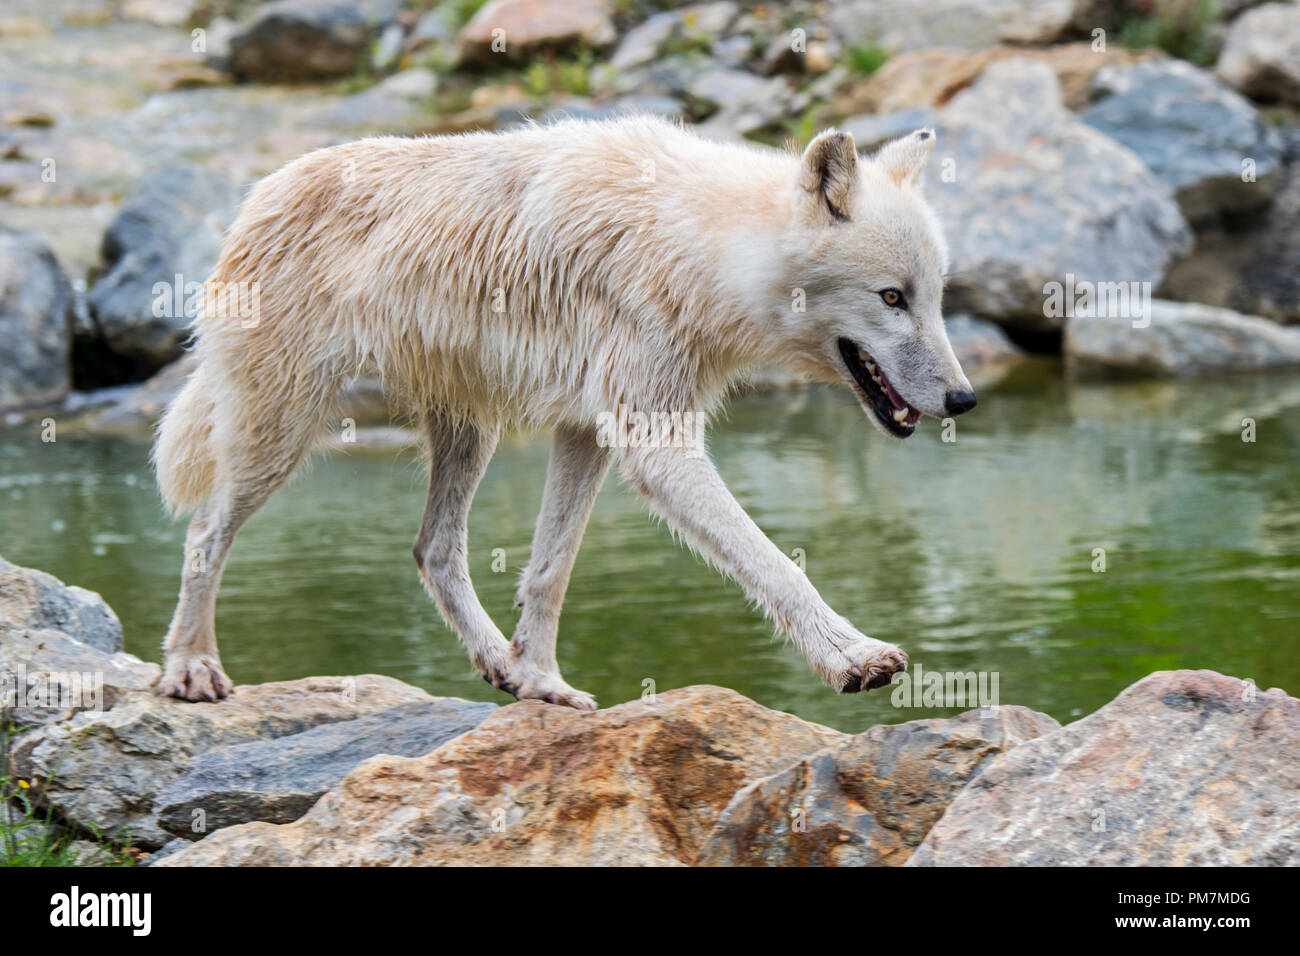 Lone Canadian Arctic wolf / white wolf / Polar wolf (Canis lupus arctos) native to Canada foraging along stream - Stock Image